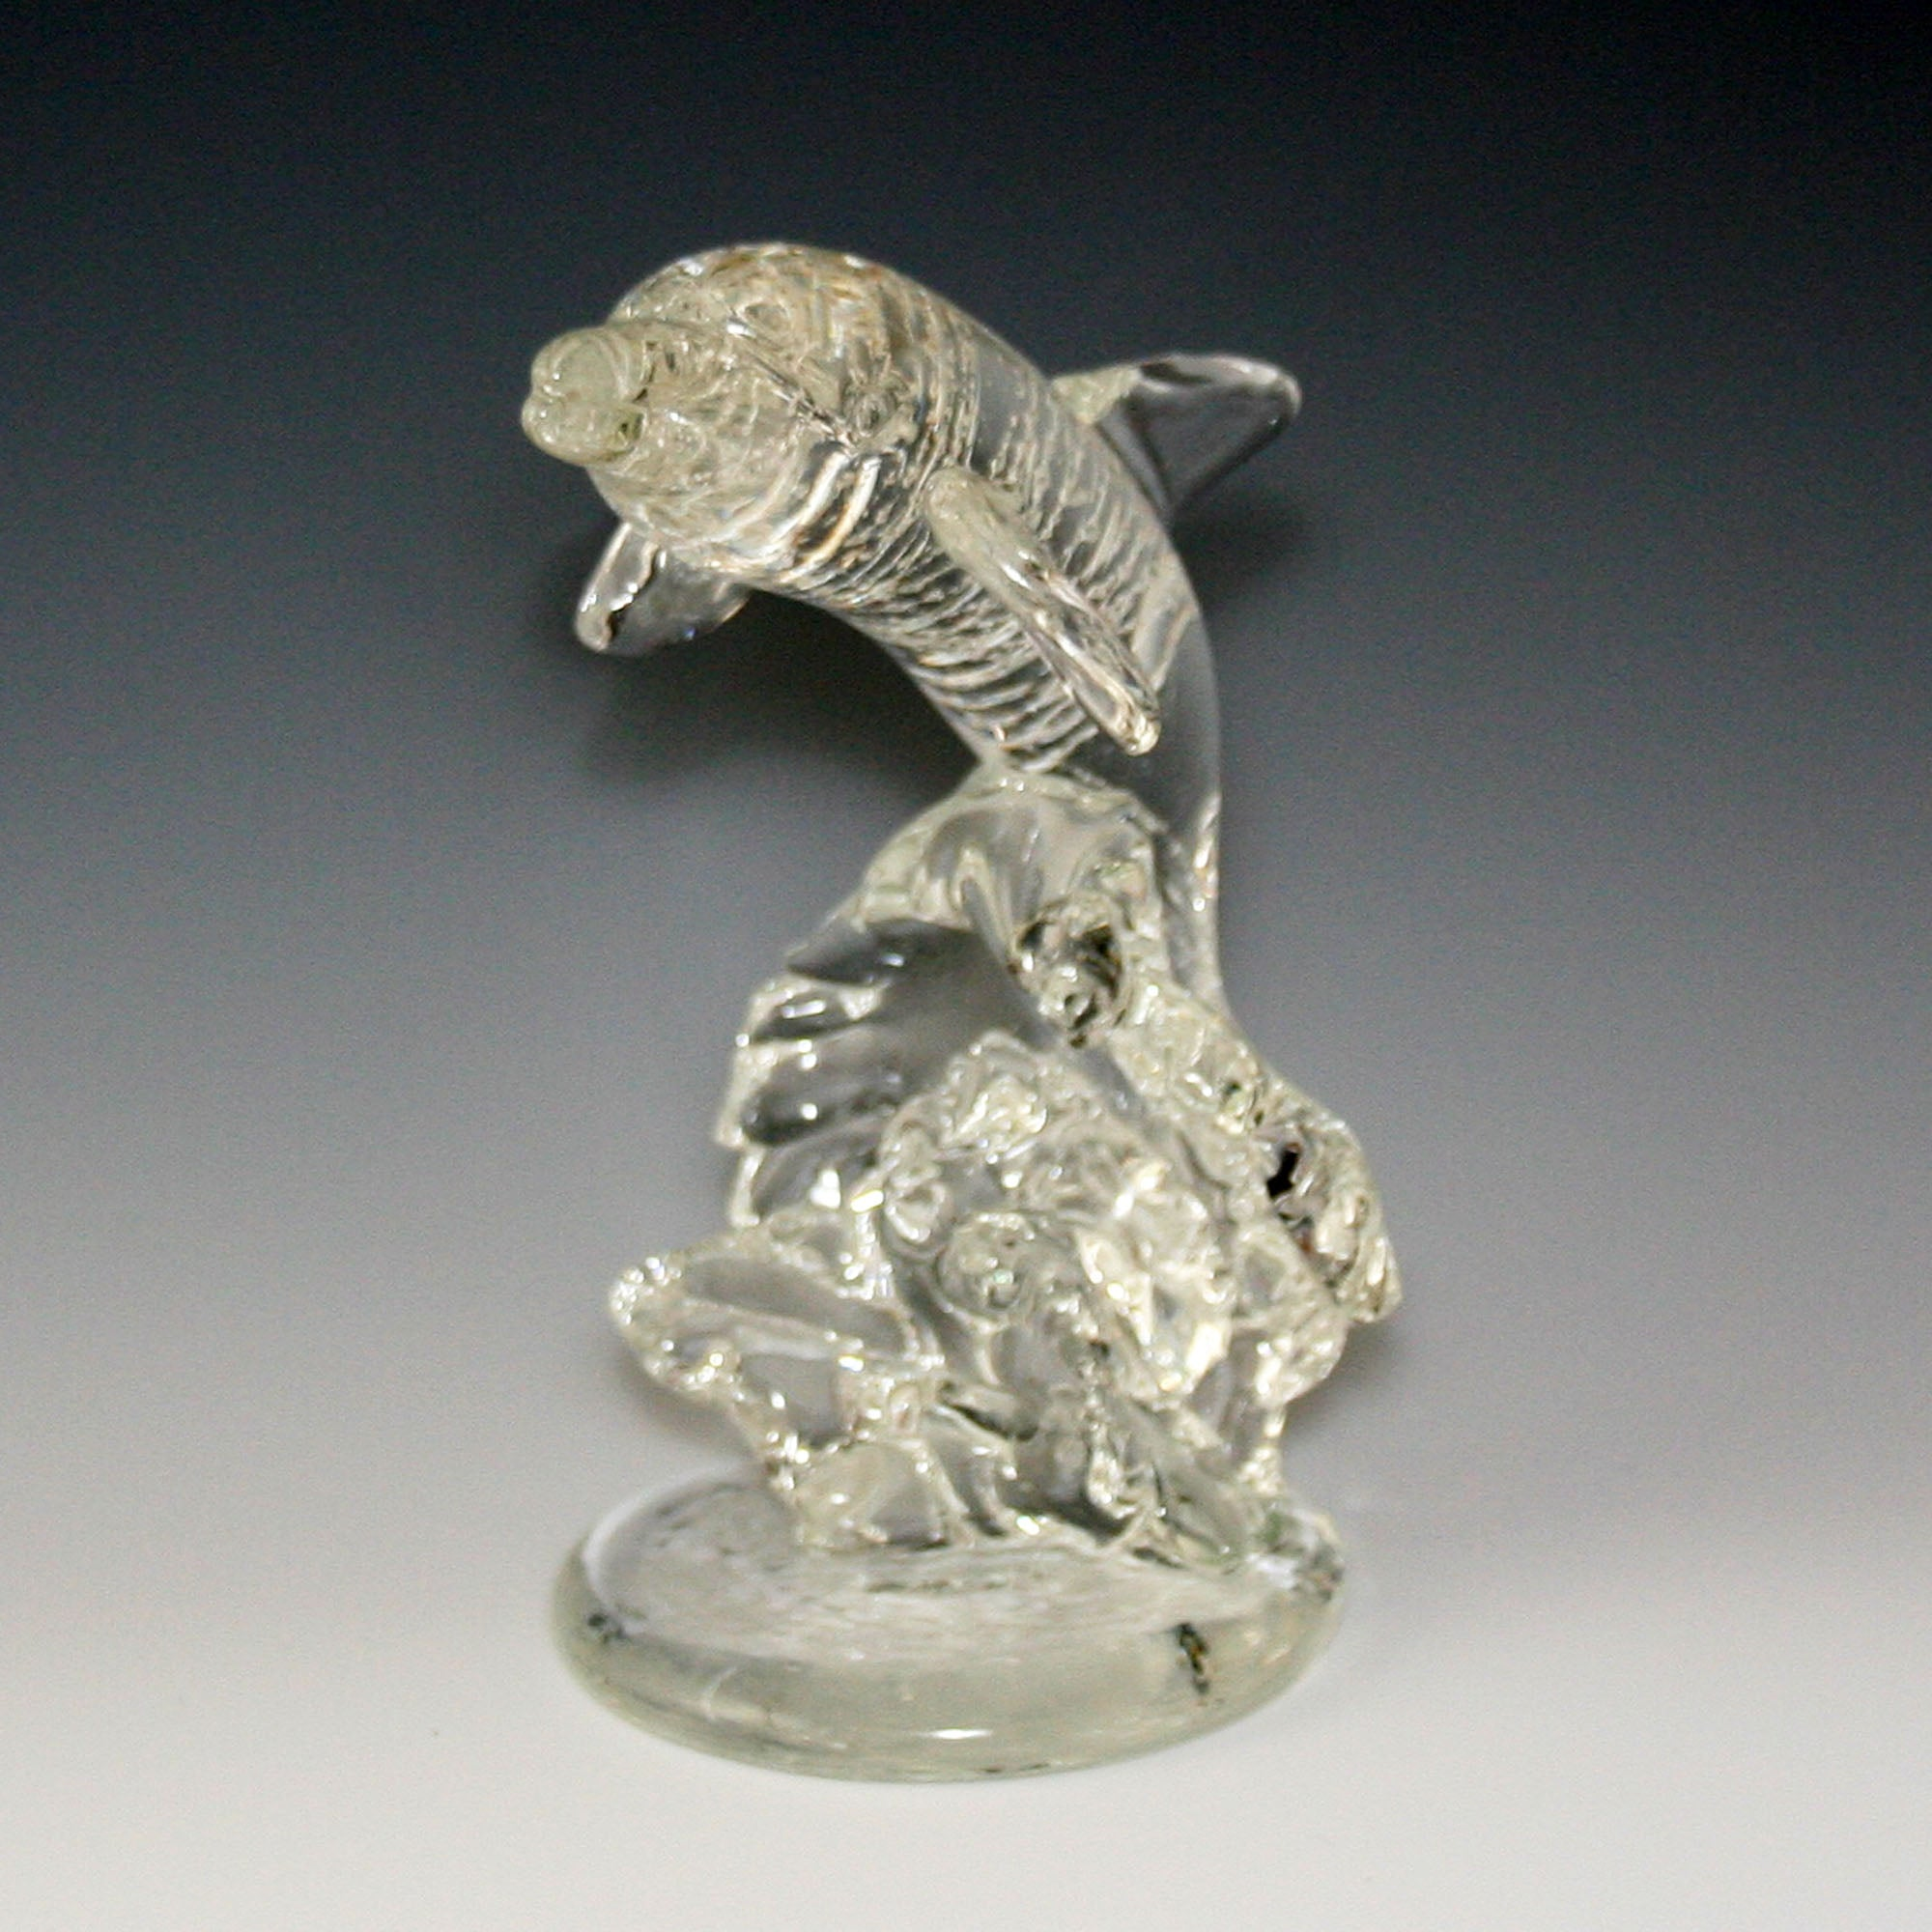 Cremation Ashes Memorial Glass Dolphin Sculpture Pet Contact Us at www.kevinfultonglass.com For Other